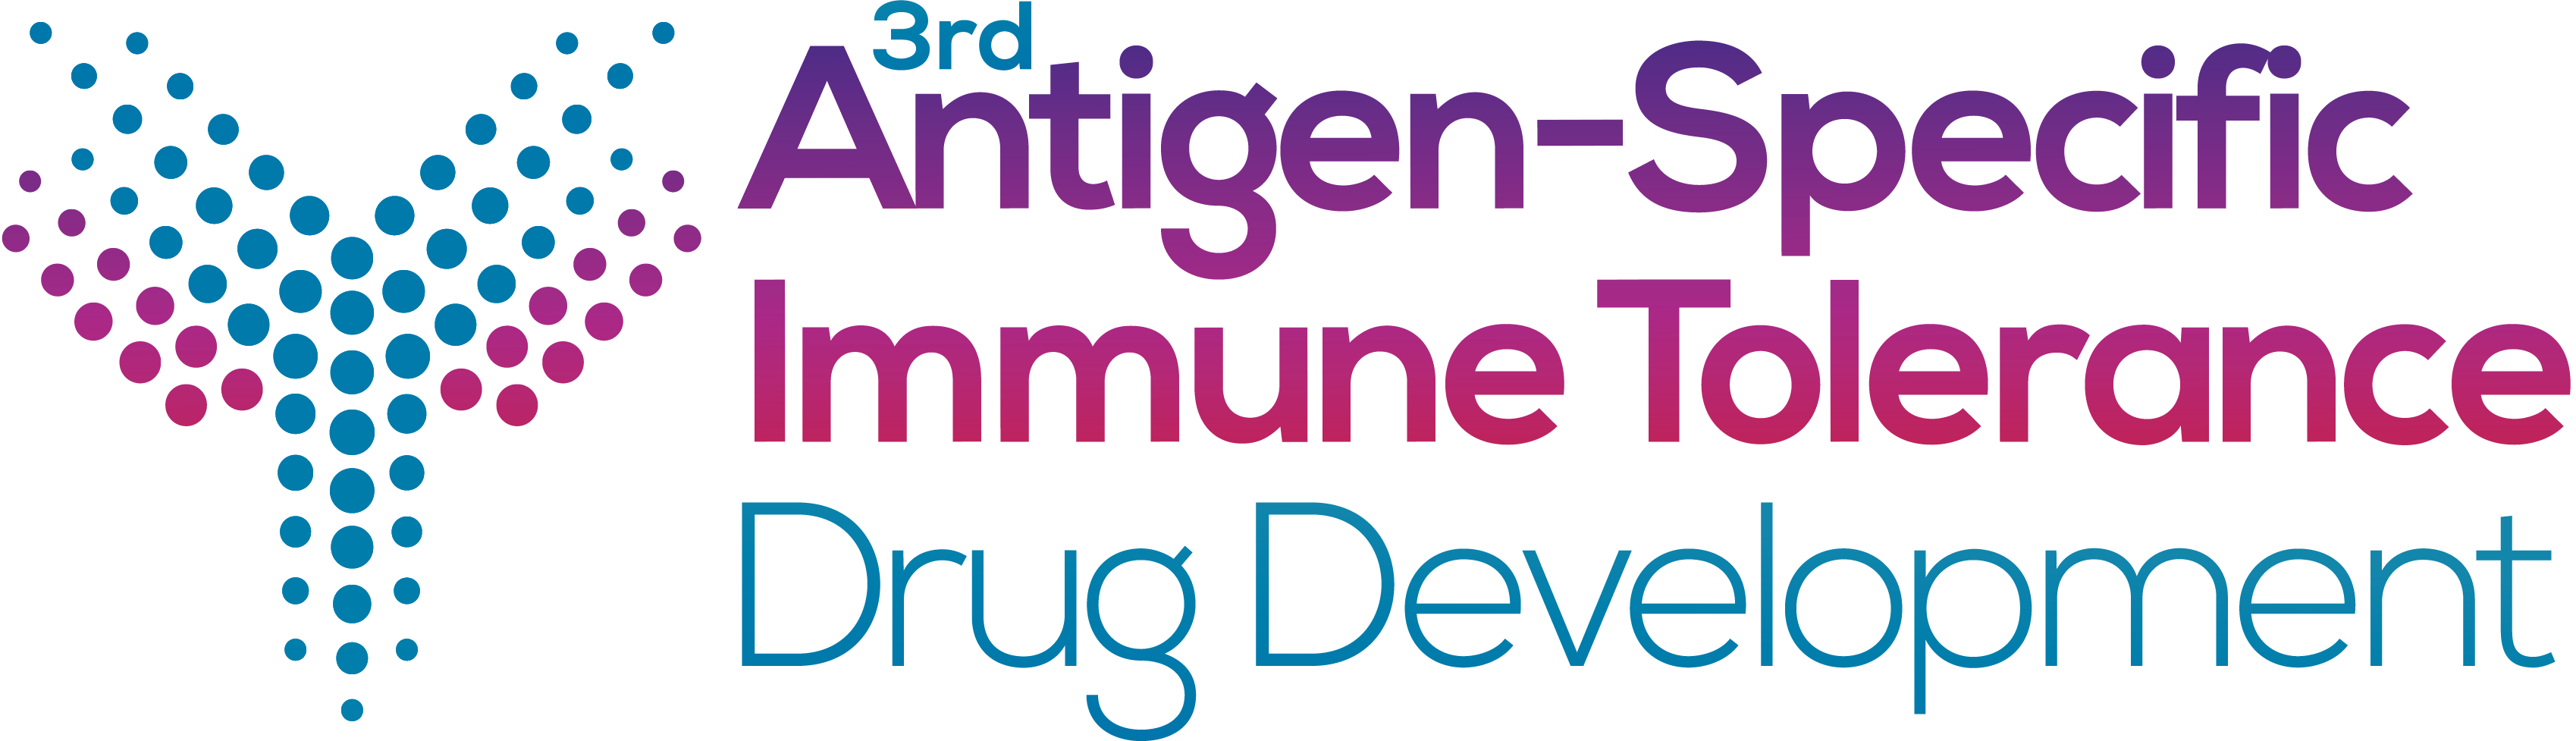 3rd Antigen Specific Immune Tolerance Drug Development Summit 2020 logo development